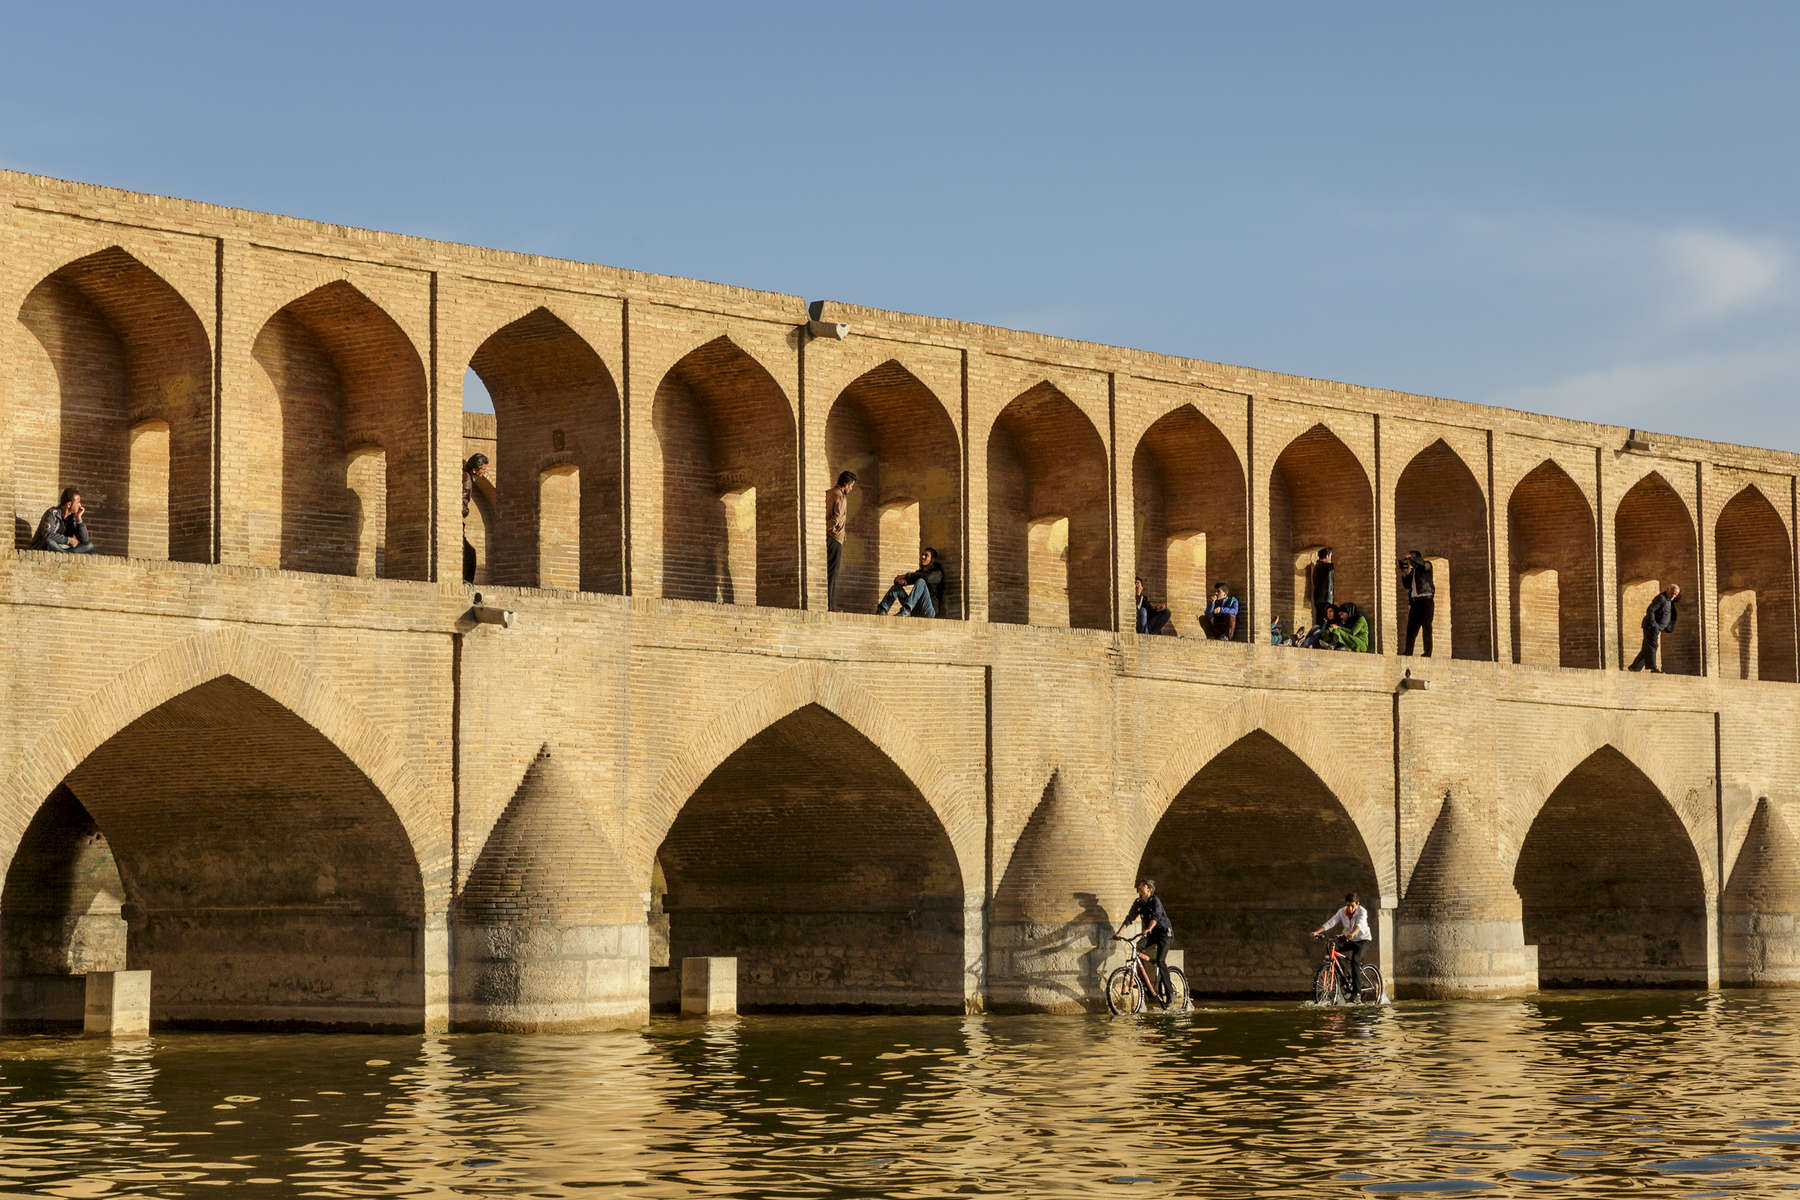 Sunset at Khaju Bridge in Isfahan.  The bridge and banks here are a popular meeting place for local families.